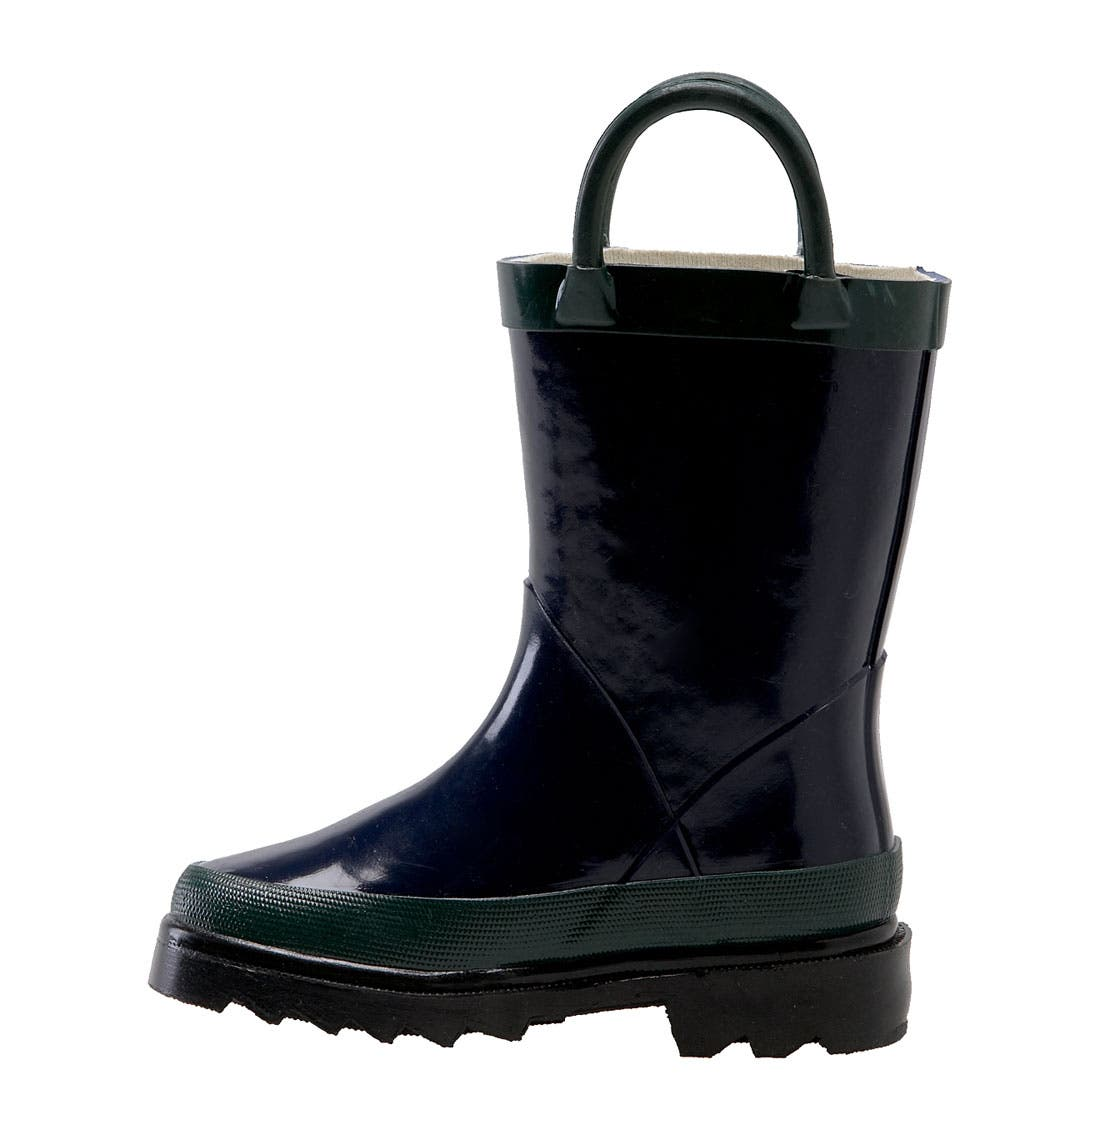 Alternate Image 2  - Western Chief 'Classic' Rain Boot (Walker, Toddler, Little Kid & Big Kid)